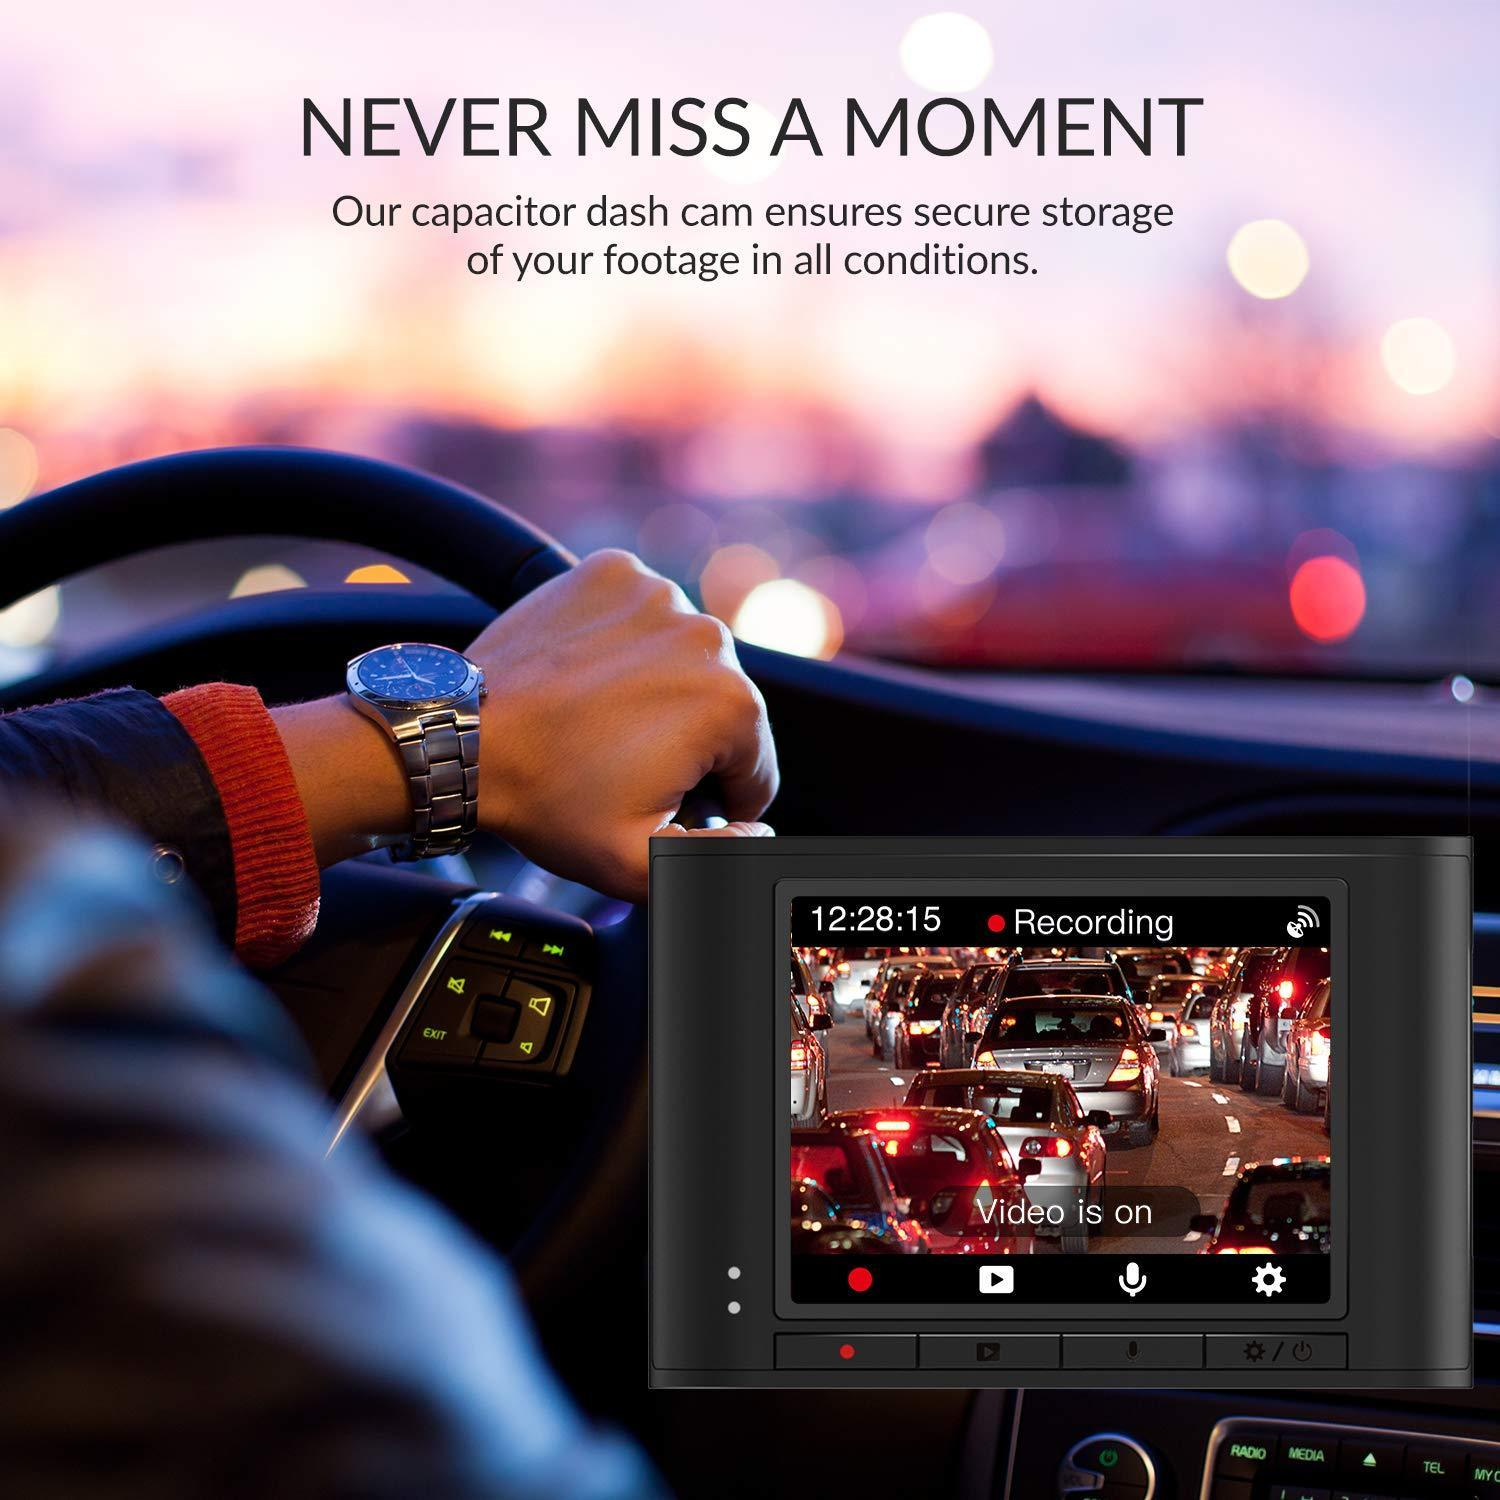 Never miss a moment - Our capacitor dash cam ensures secure storage of your footage in all conditions